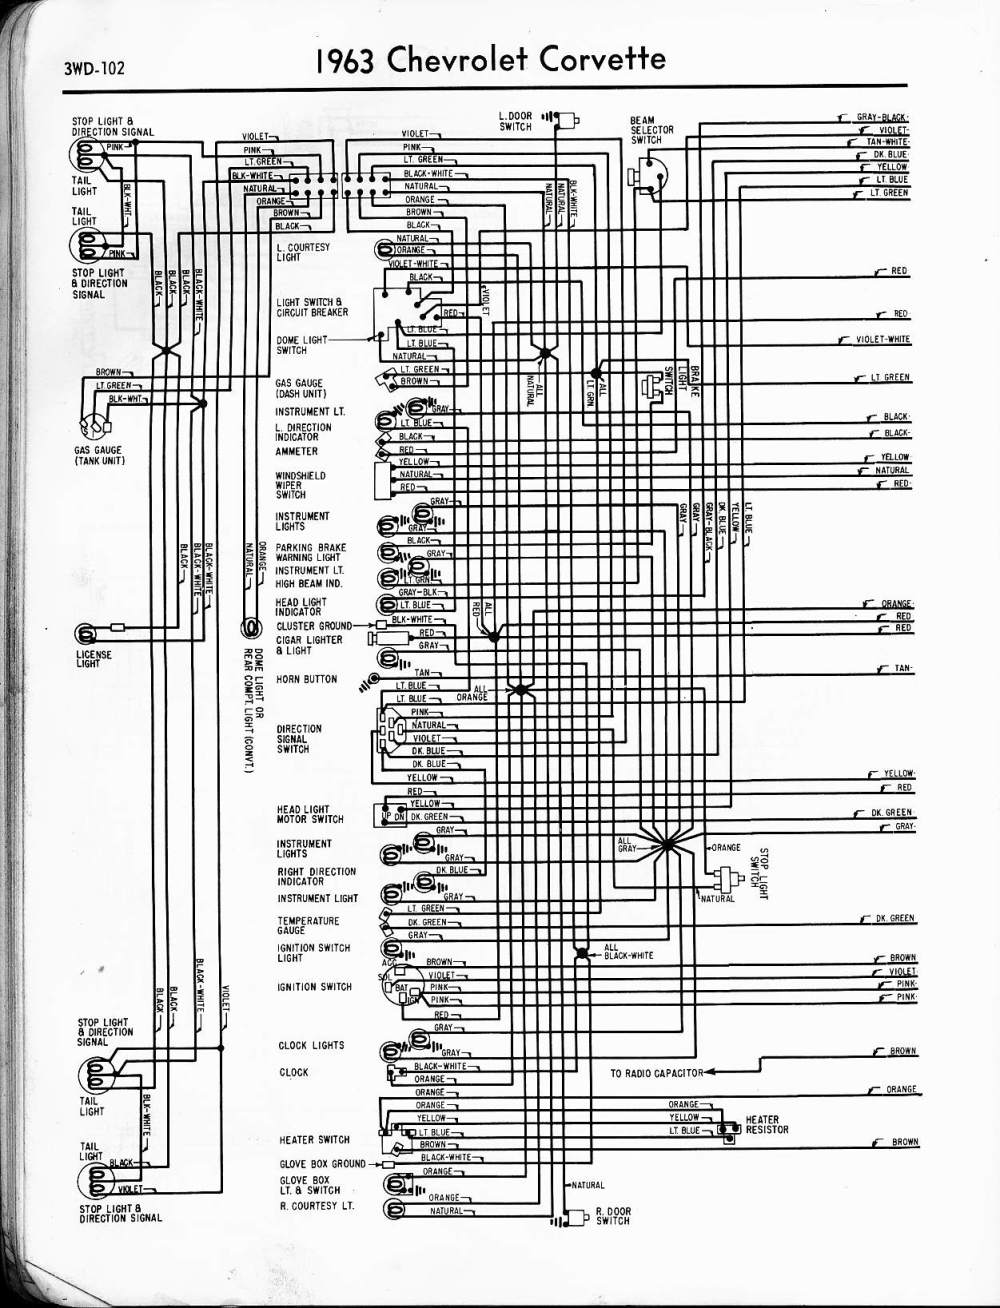 medium resolution of 63 corvette free wiring diagrams auto simple wiring diagrams rh 22 studio011 de 1984 corvette wiring